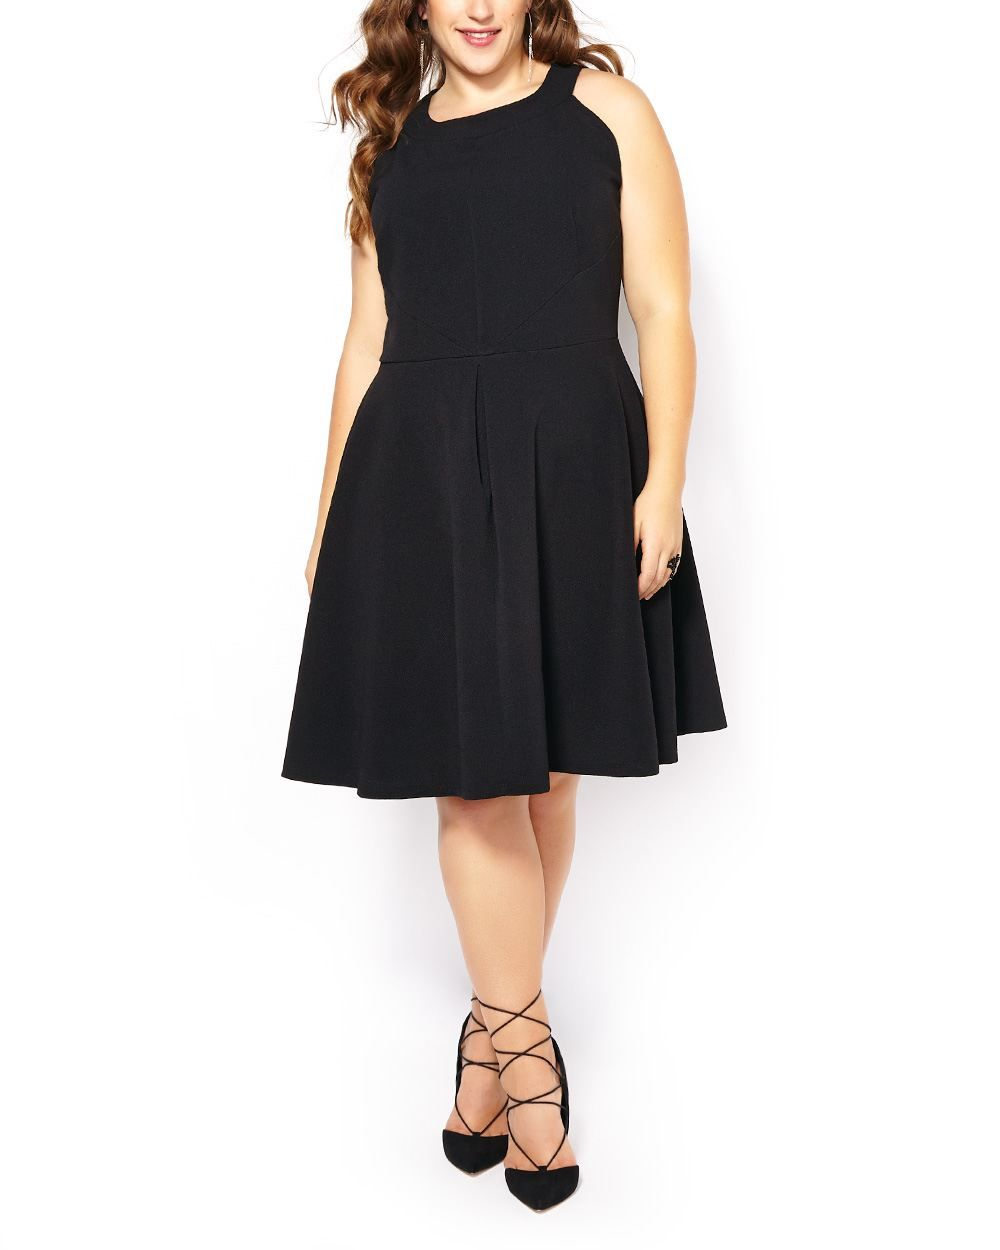 The Little Black Dress A Wardrobe Must Have This Stunning Plus